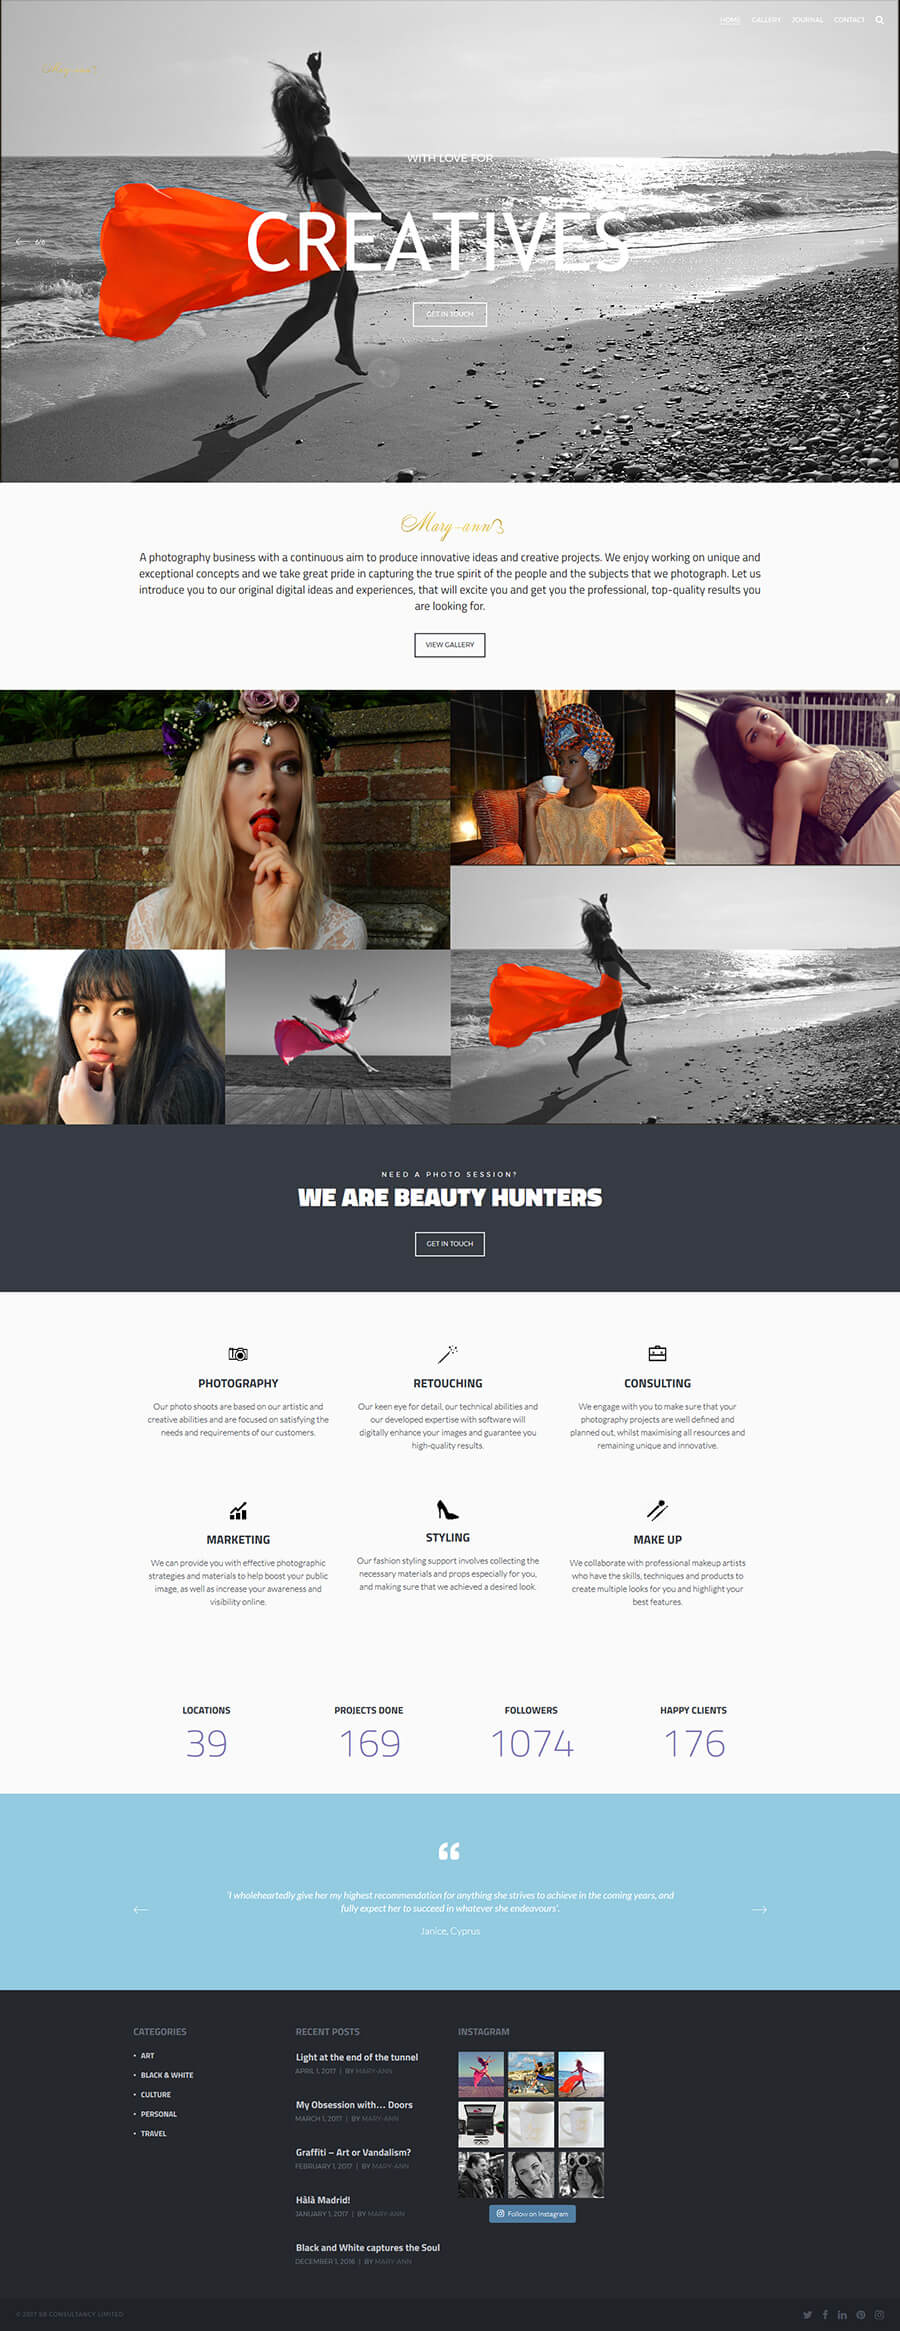 How To Create A Photography Website In 5 Minutes